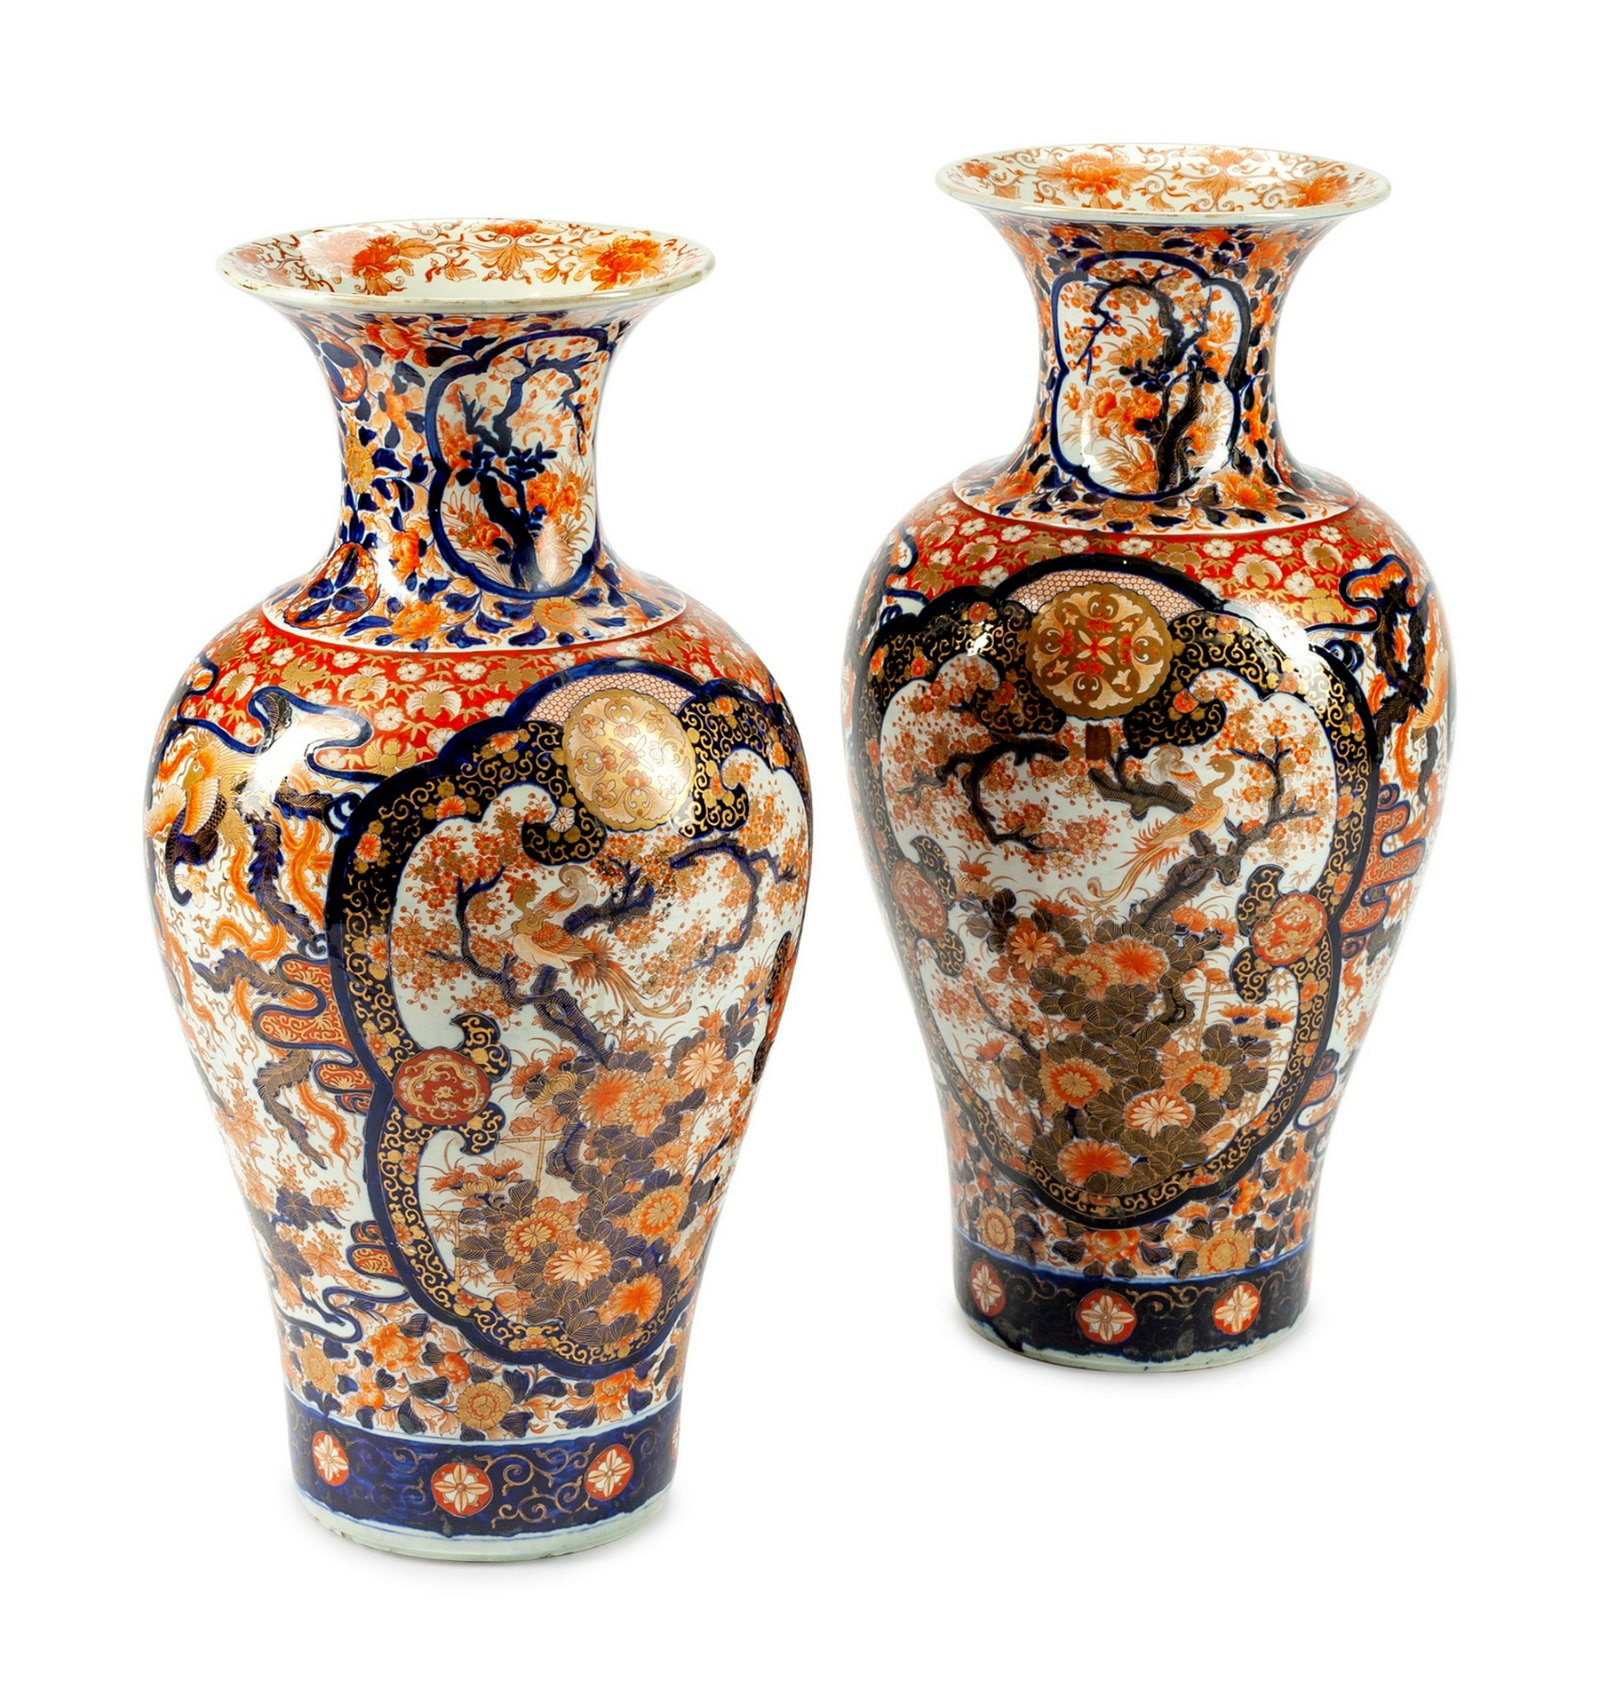 A Pair of Large Japanese Imari Vases